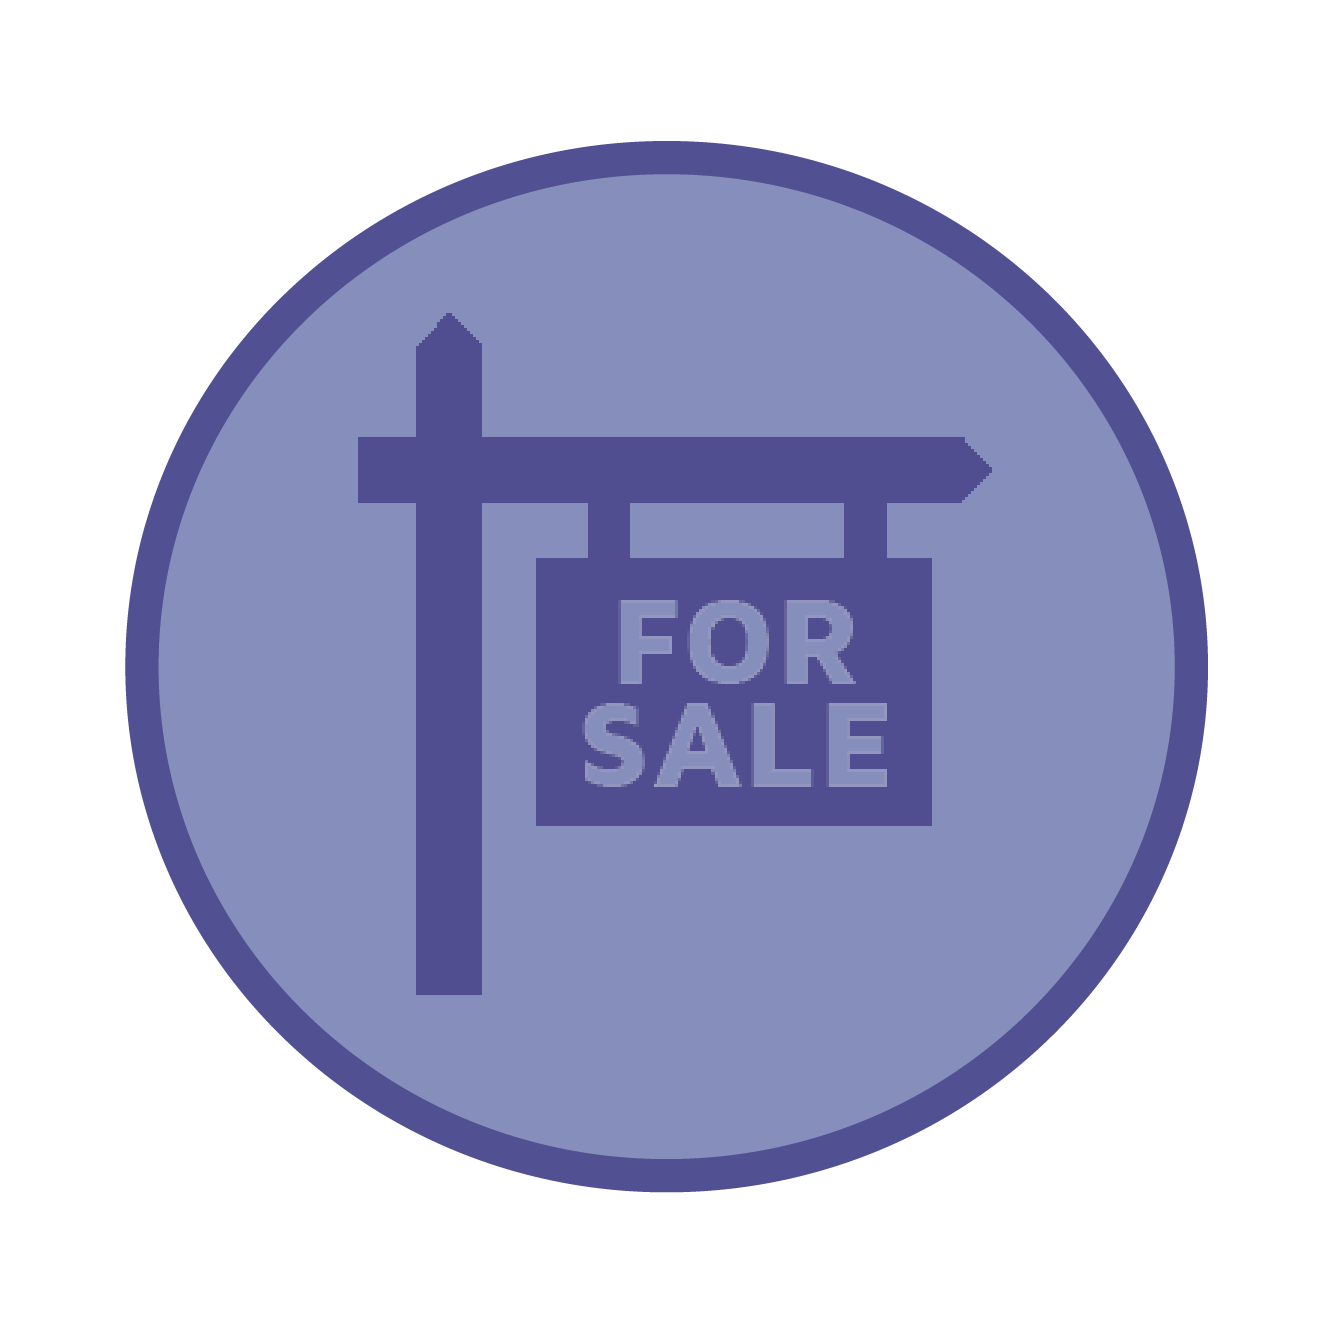 AvailableSpaceIcon-01